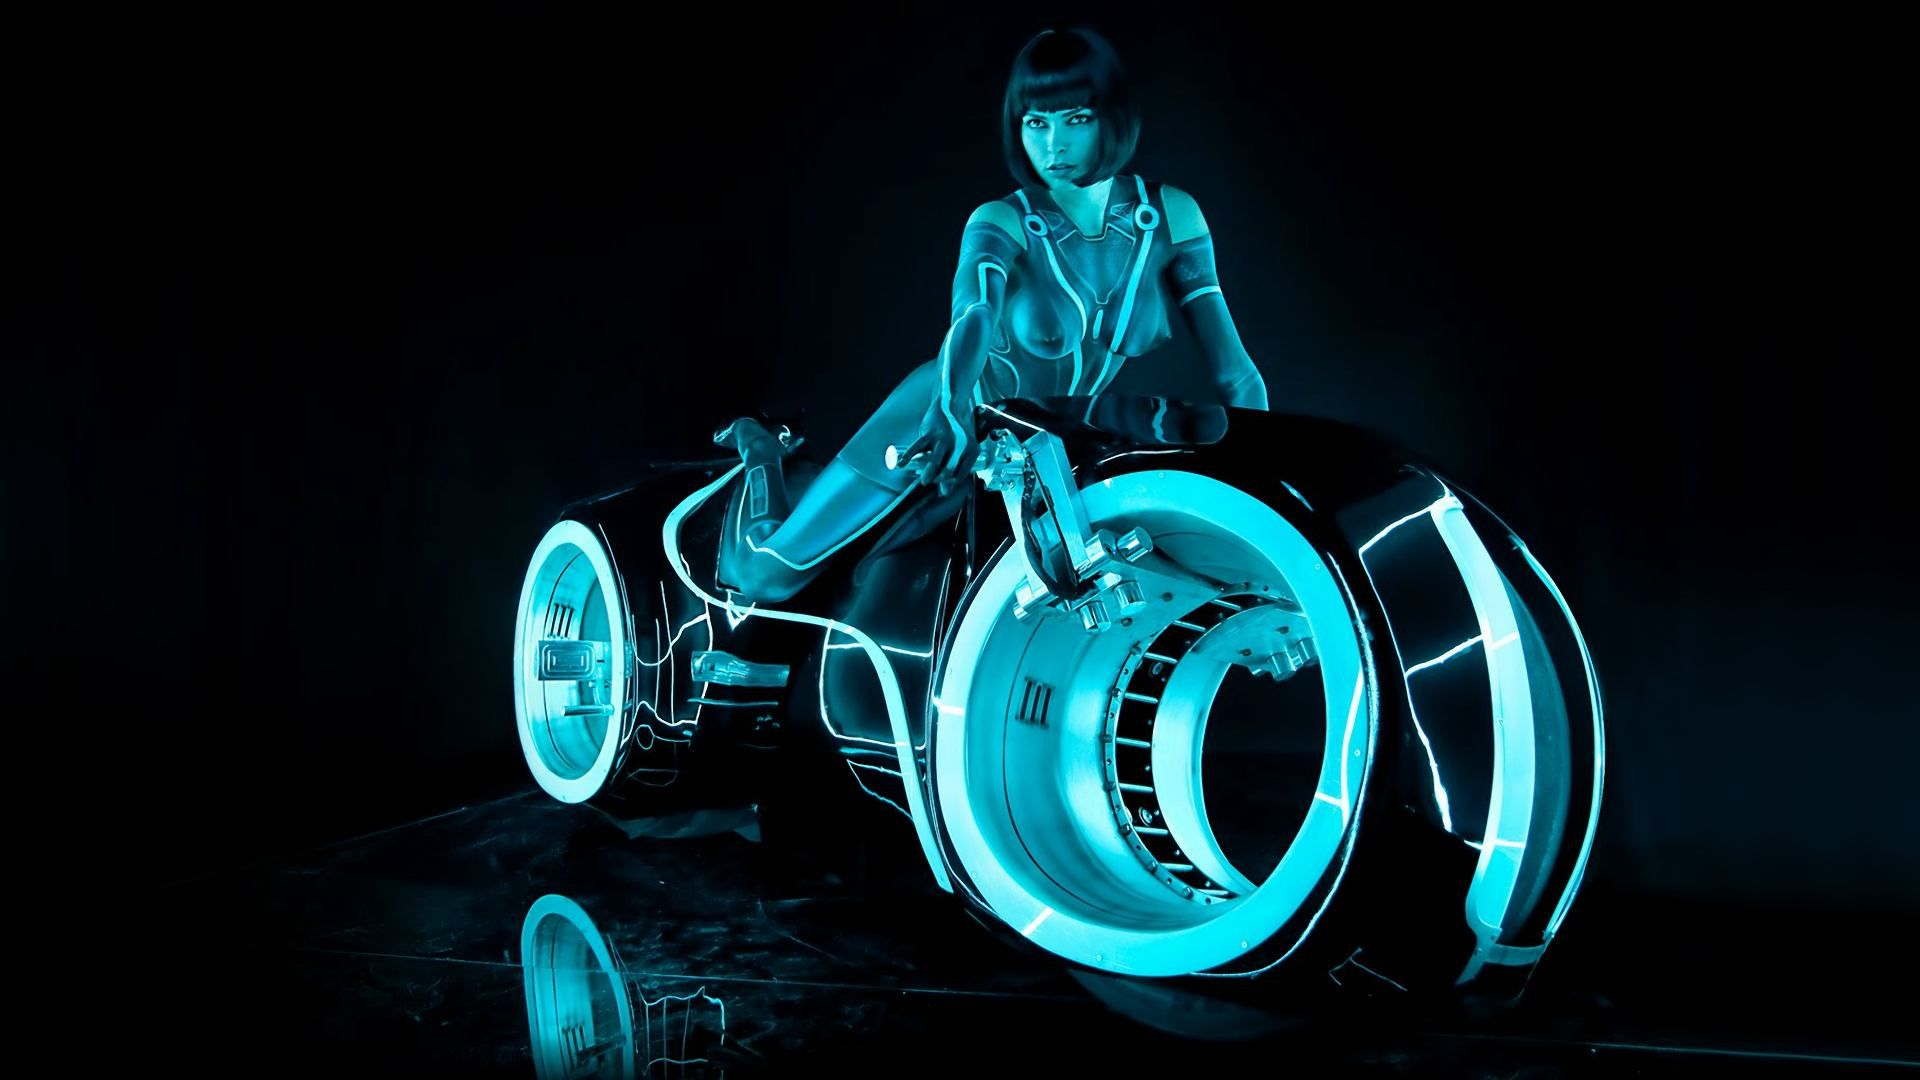 tron wallpapers hd wallpaper hd wallpapers pinterest wallpaper